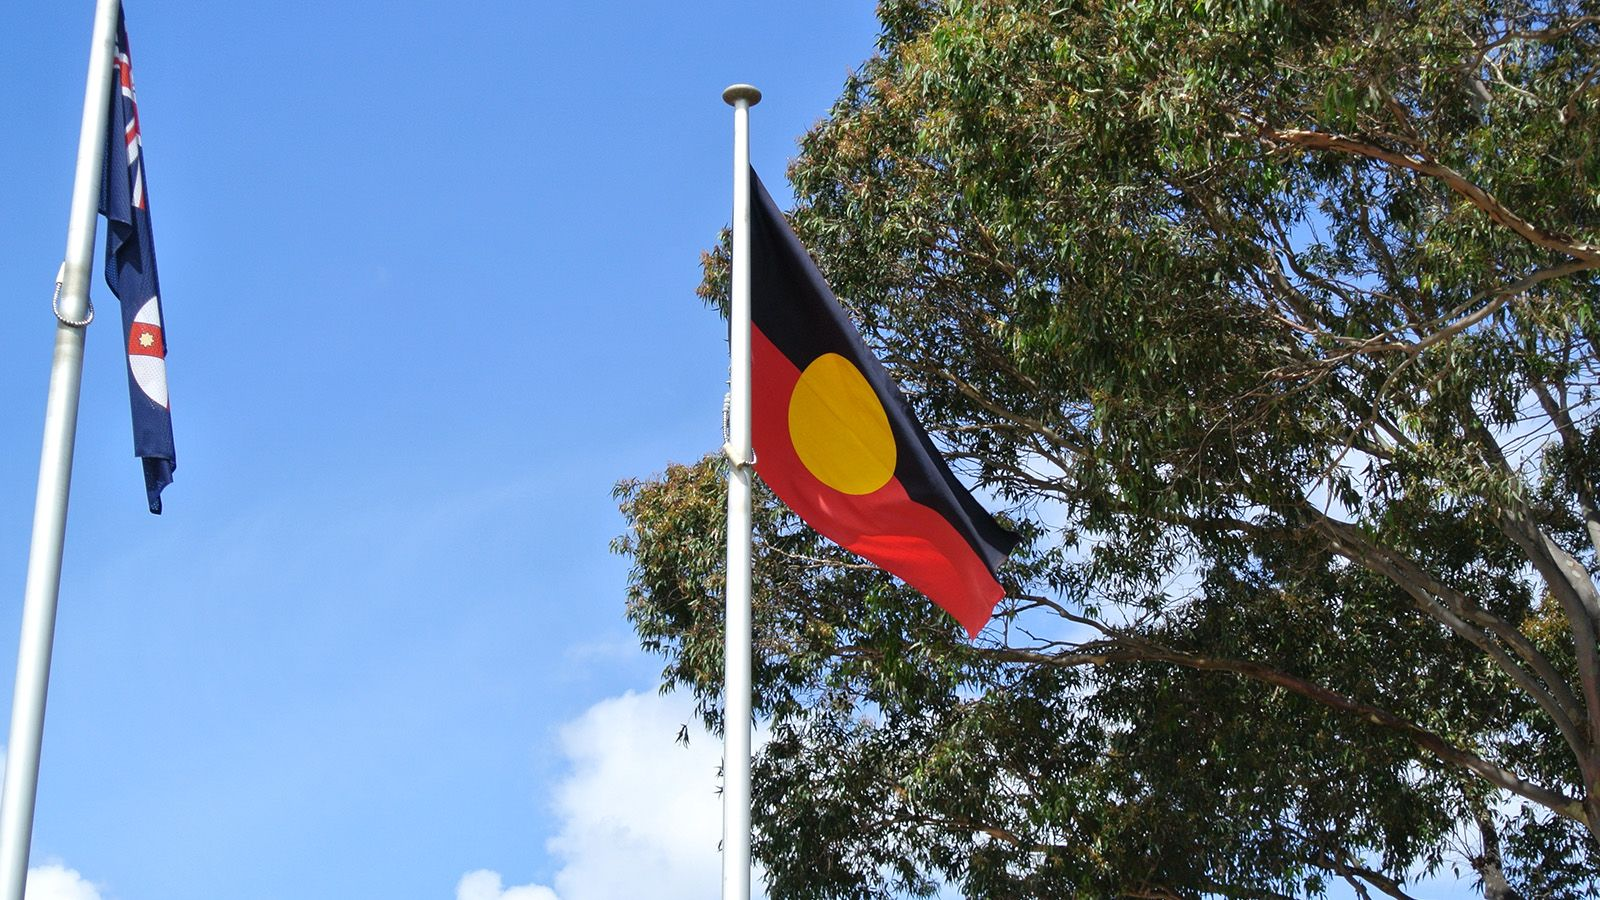 The Aboriginal Flag raised on a flagpole banner image